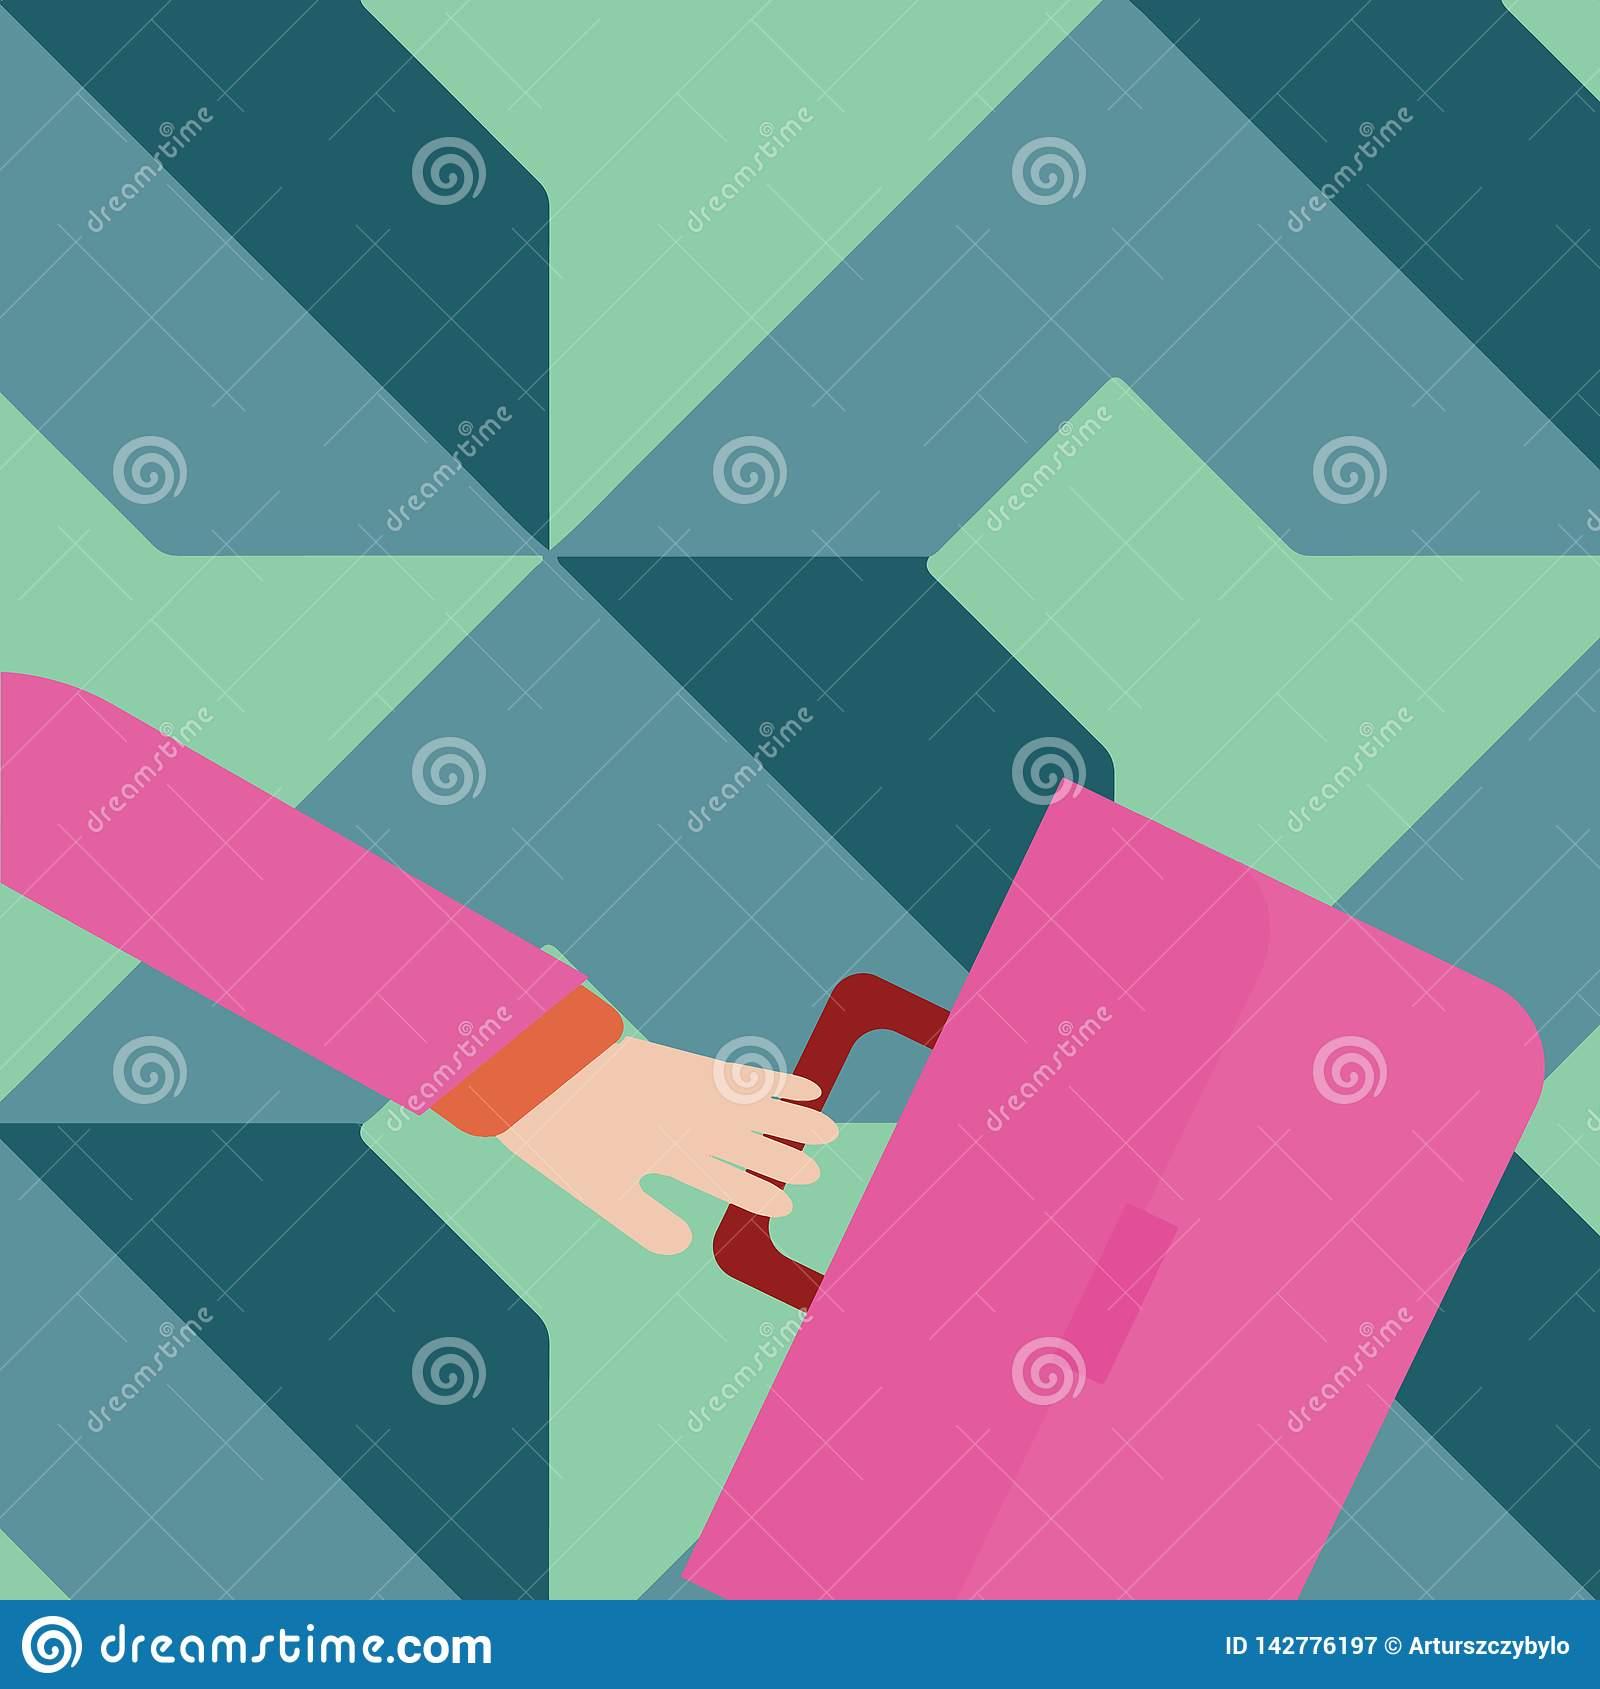 Businessman Hand Holding Colorful Briefcase and Arm Swayed Farther Back is In A Hurry. Creative Background Idea for New